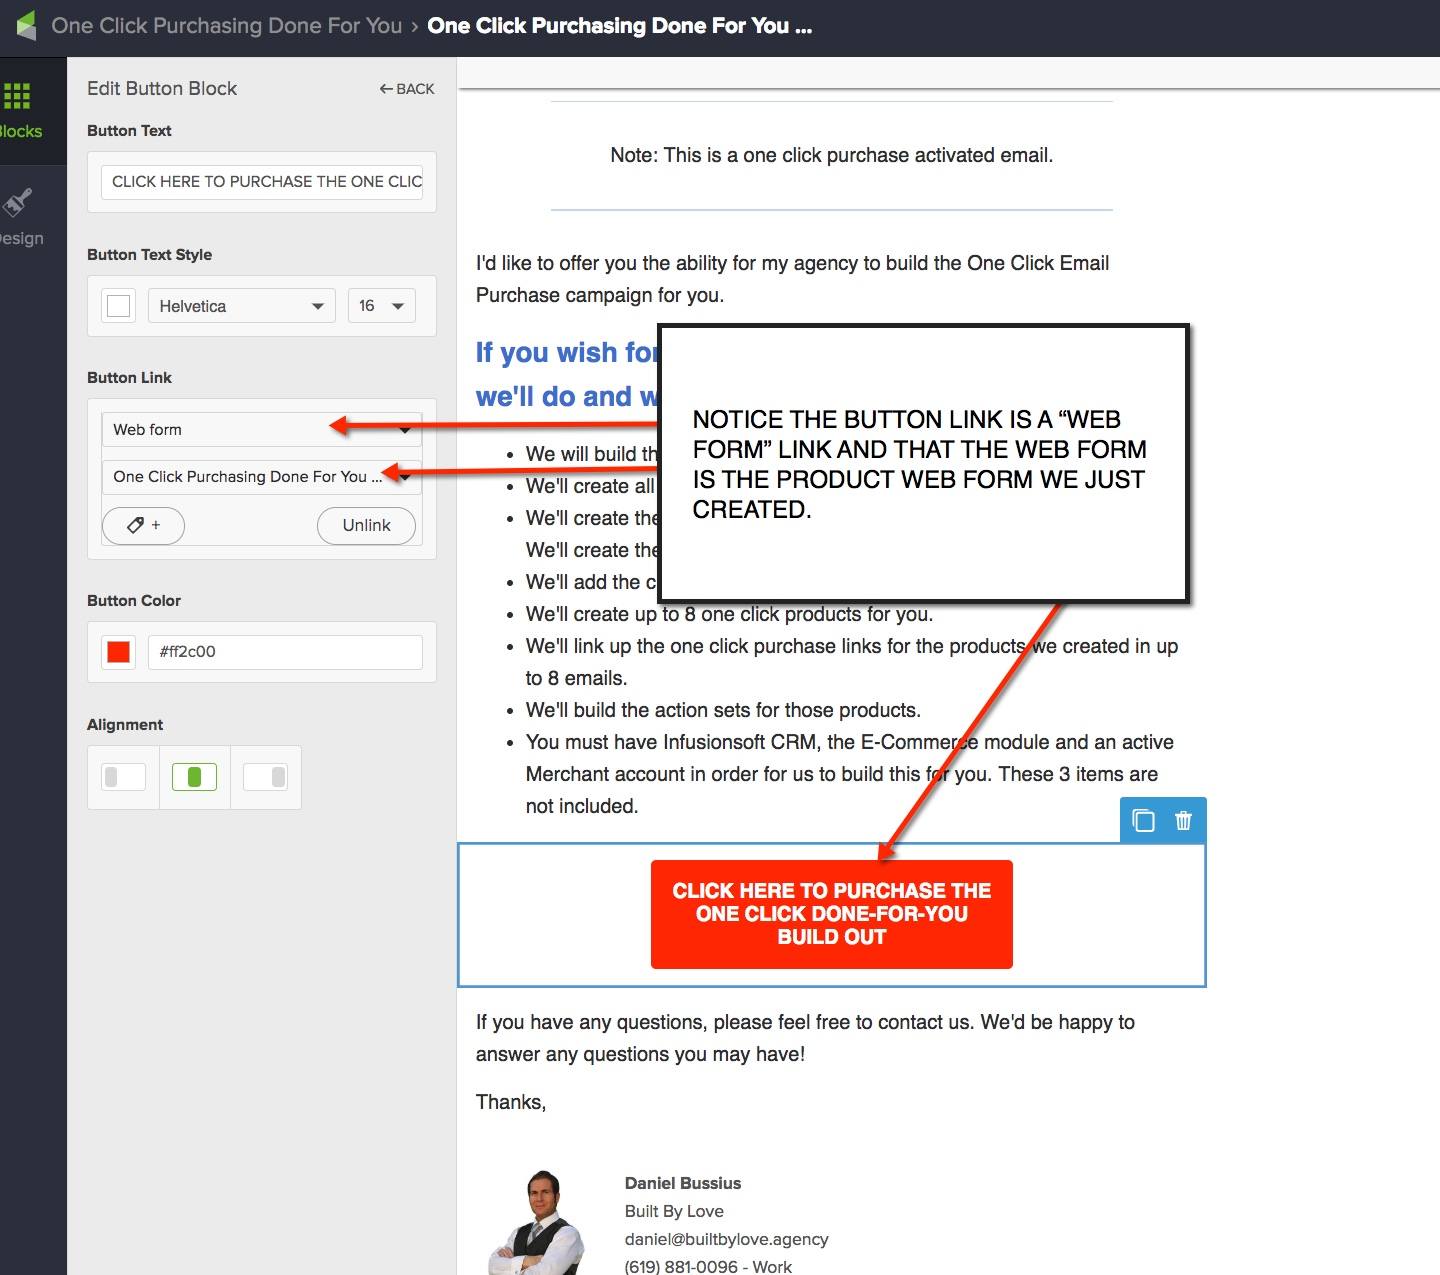 One Click Product Web Form Button Link